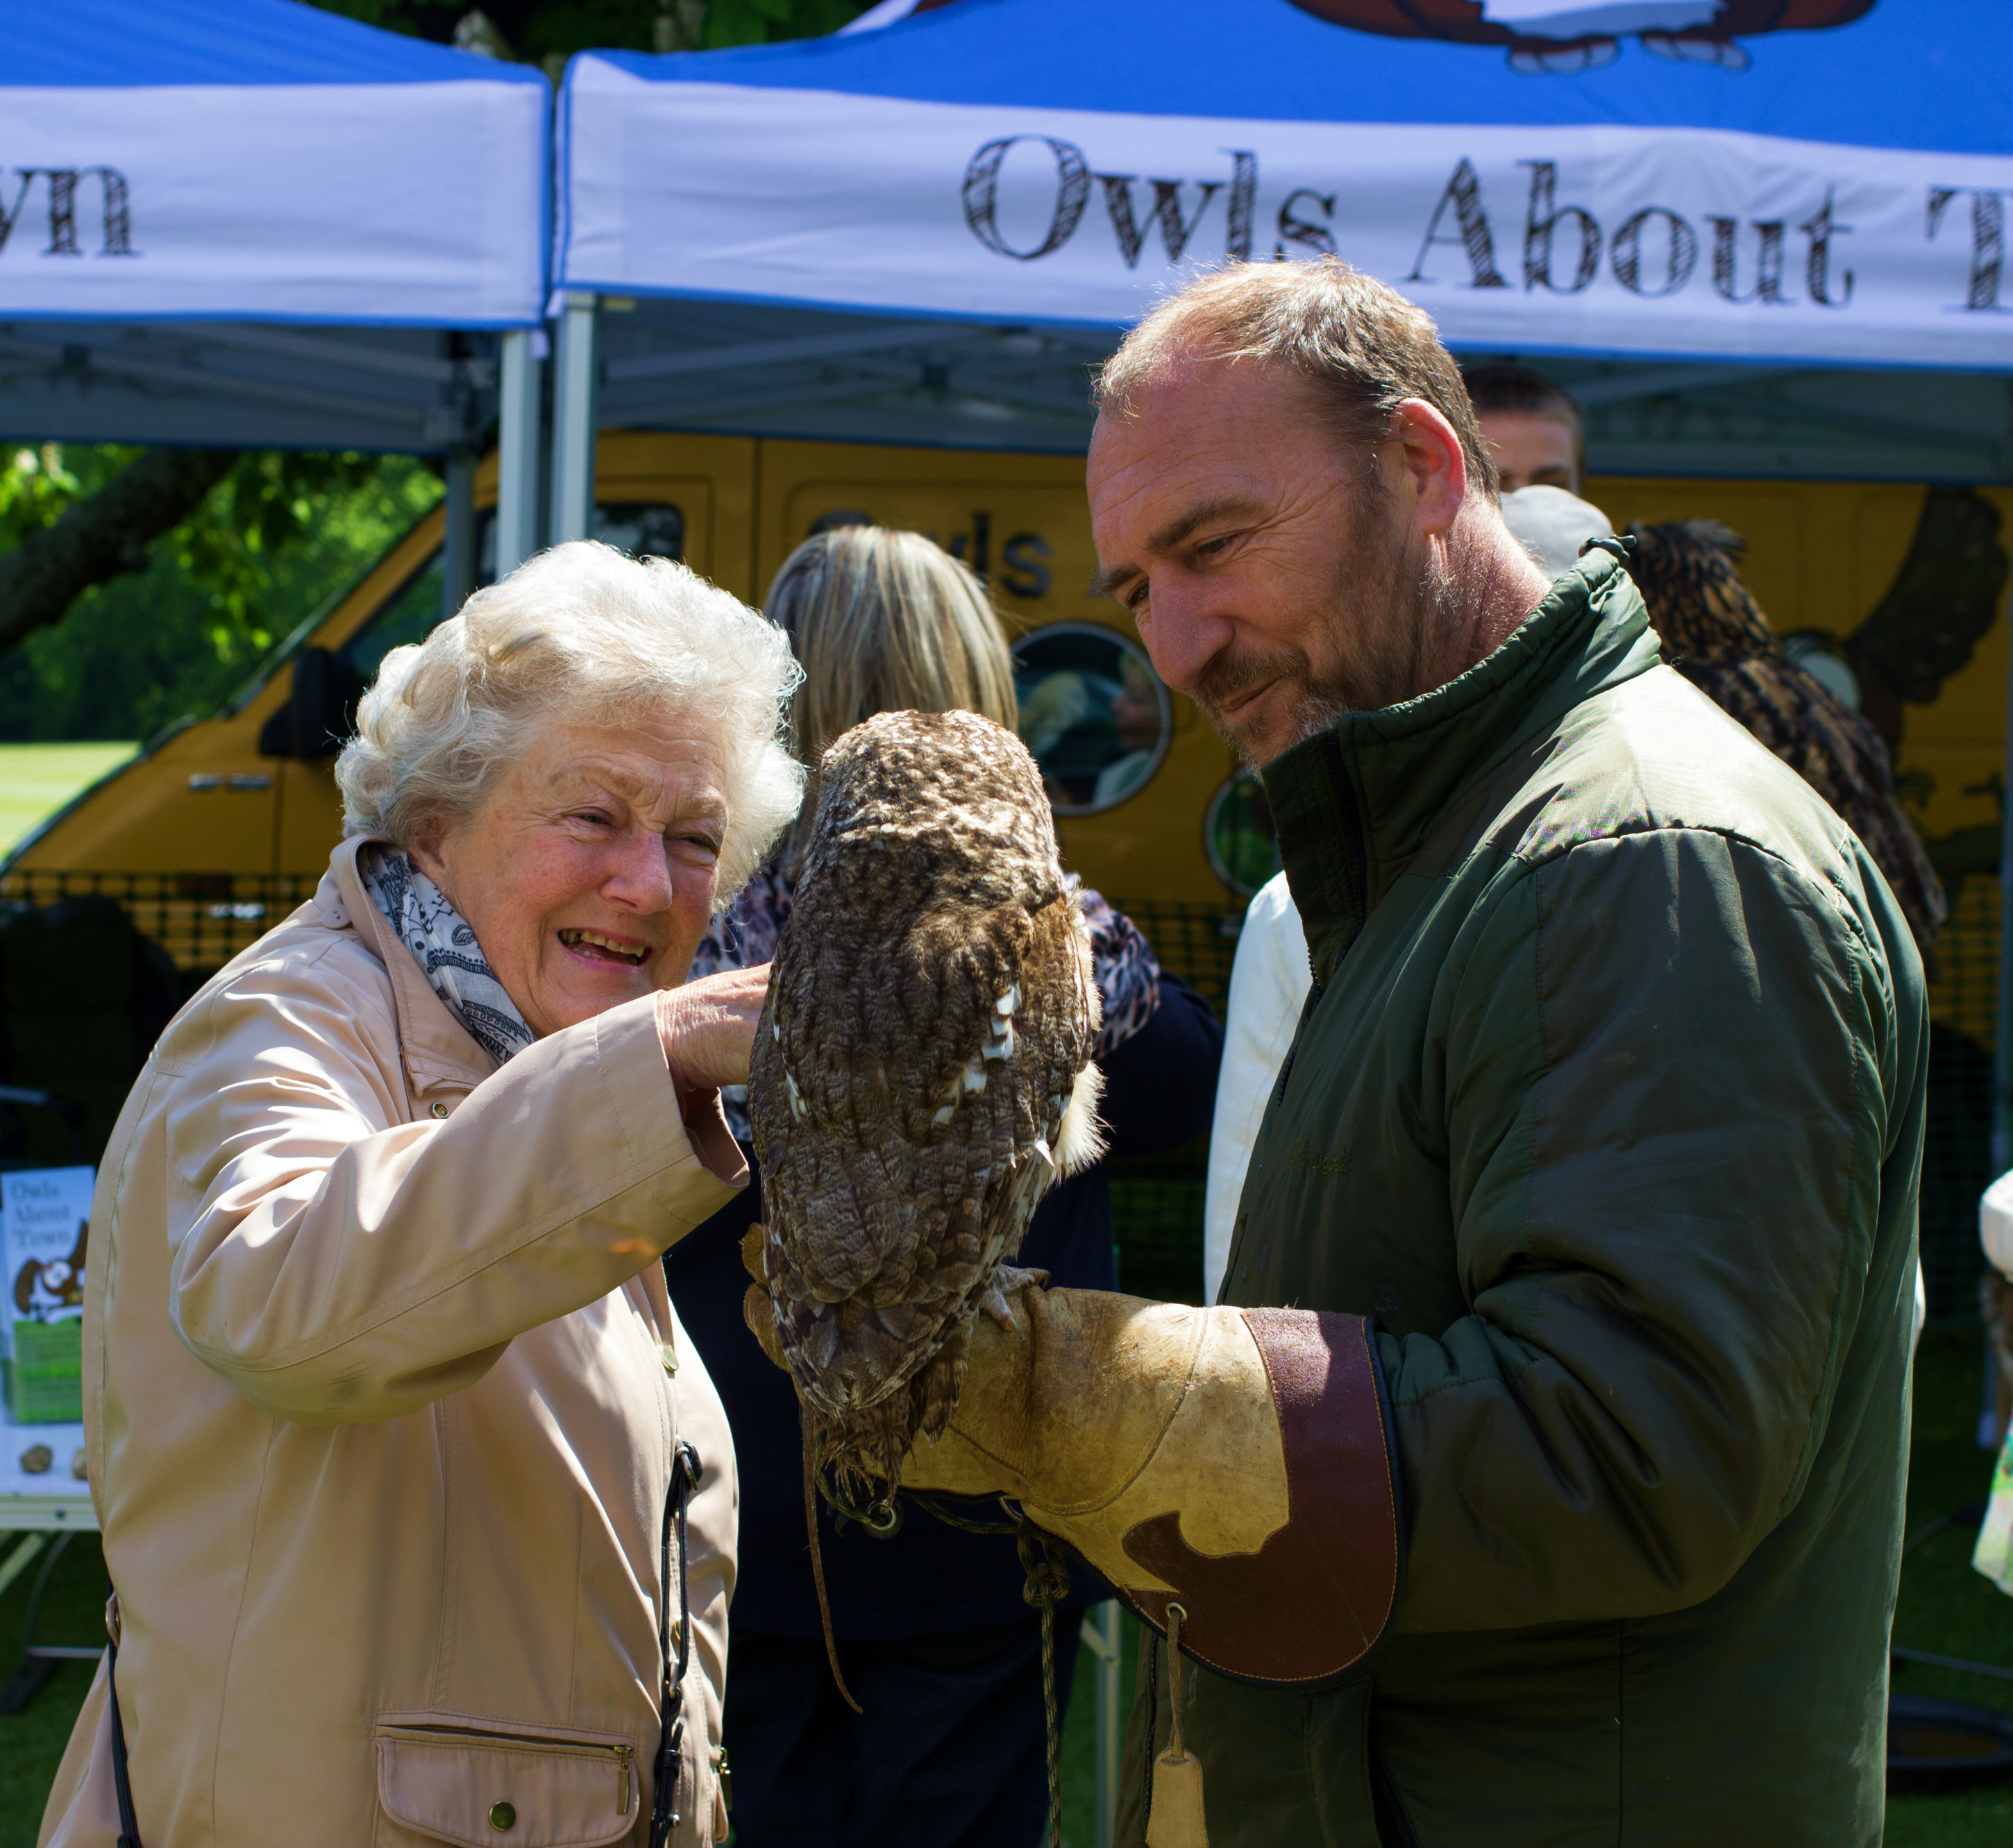 Woods Travel 45 Year Event Owls About Town